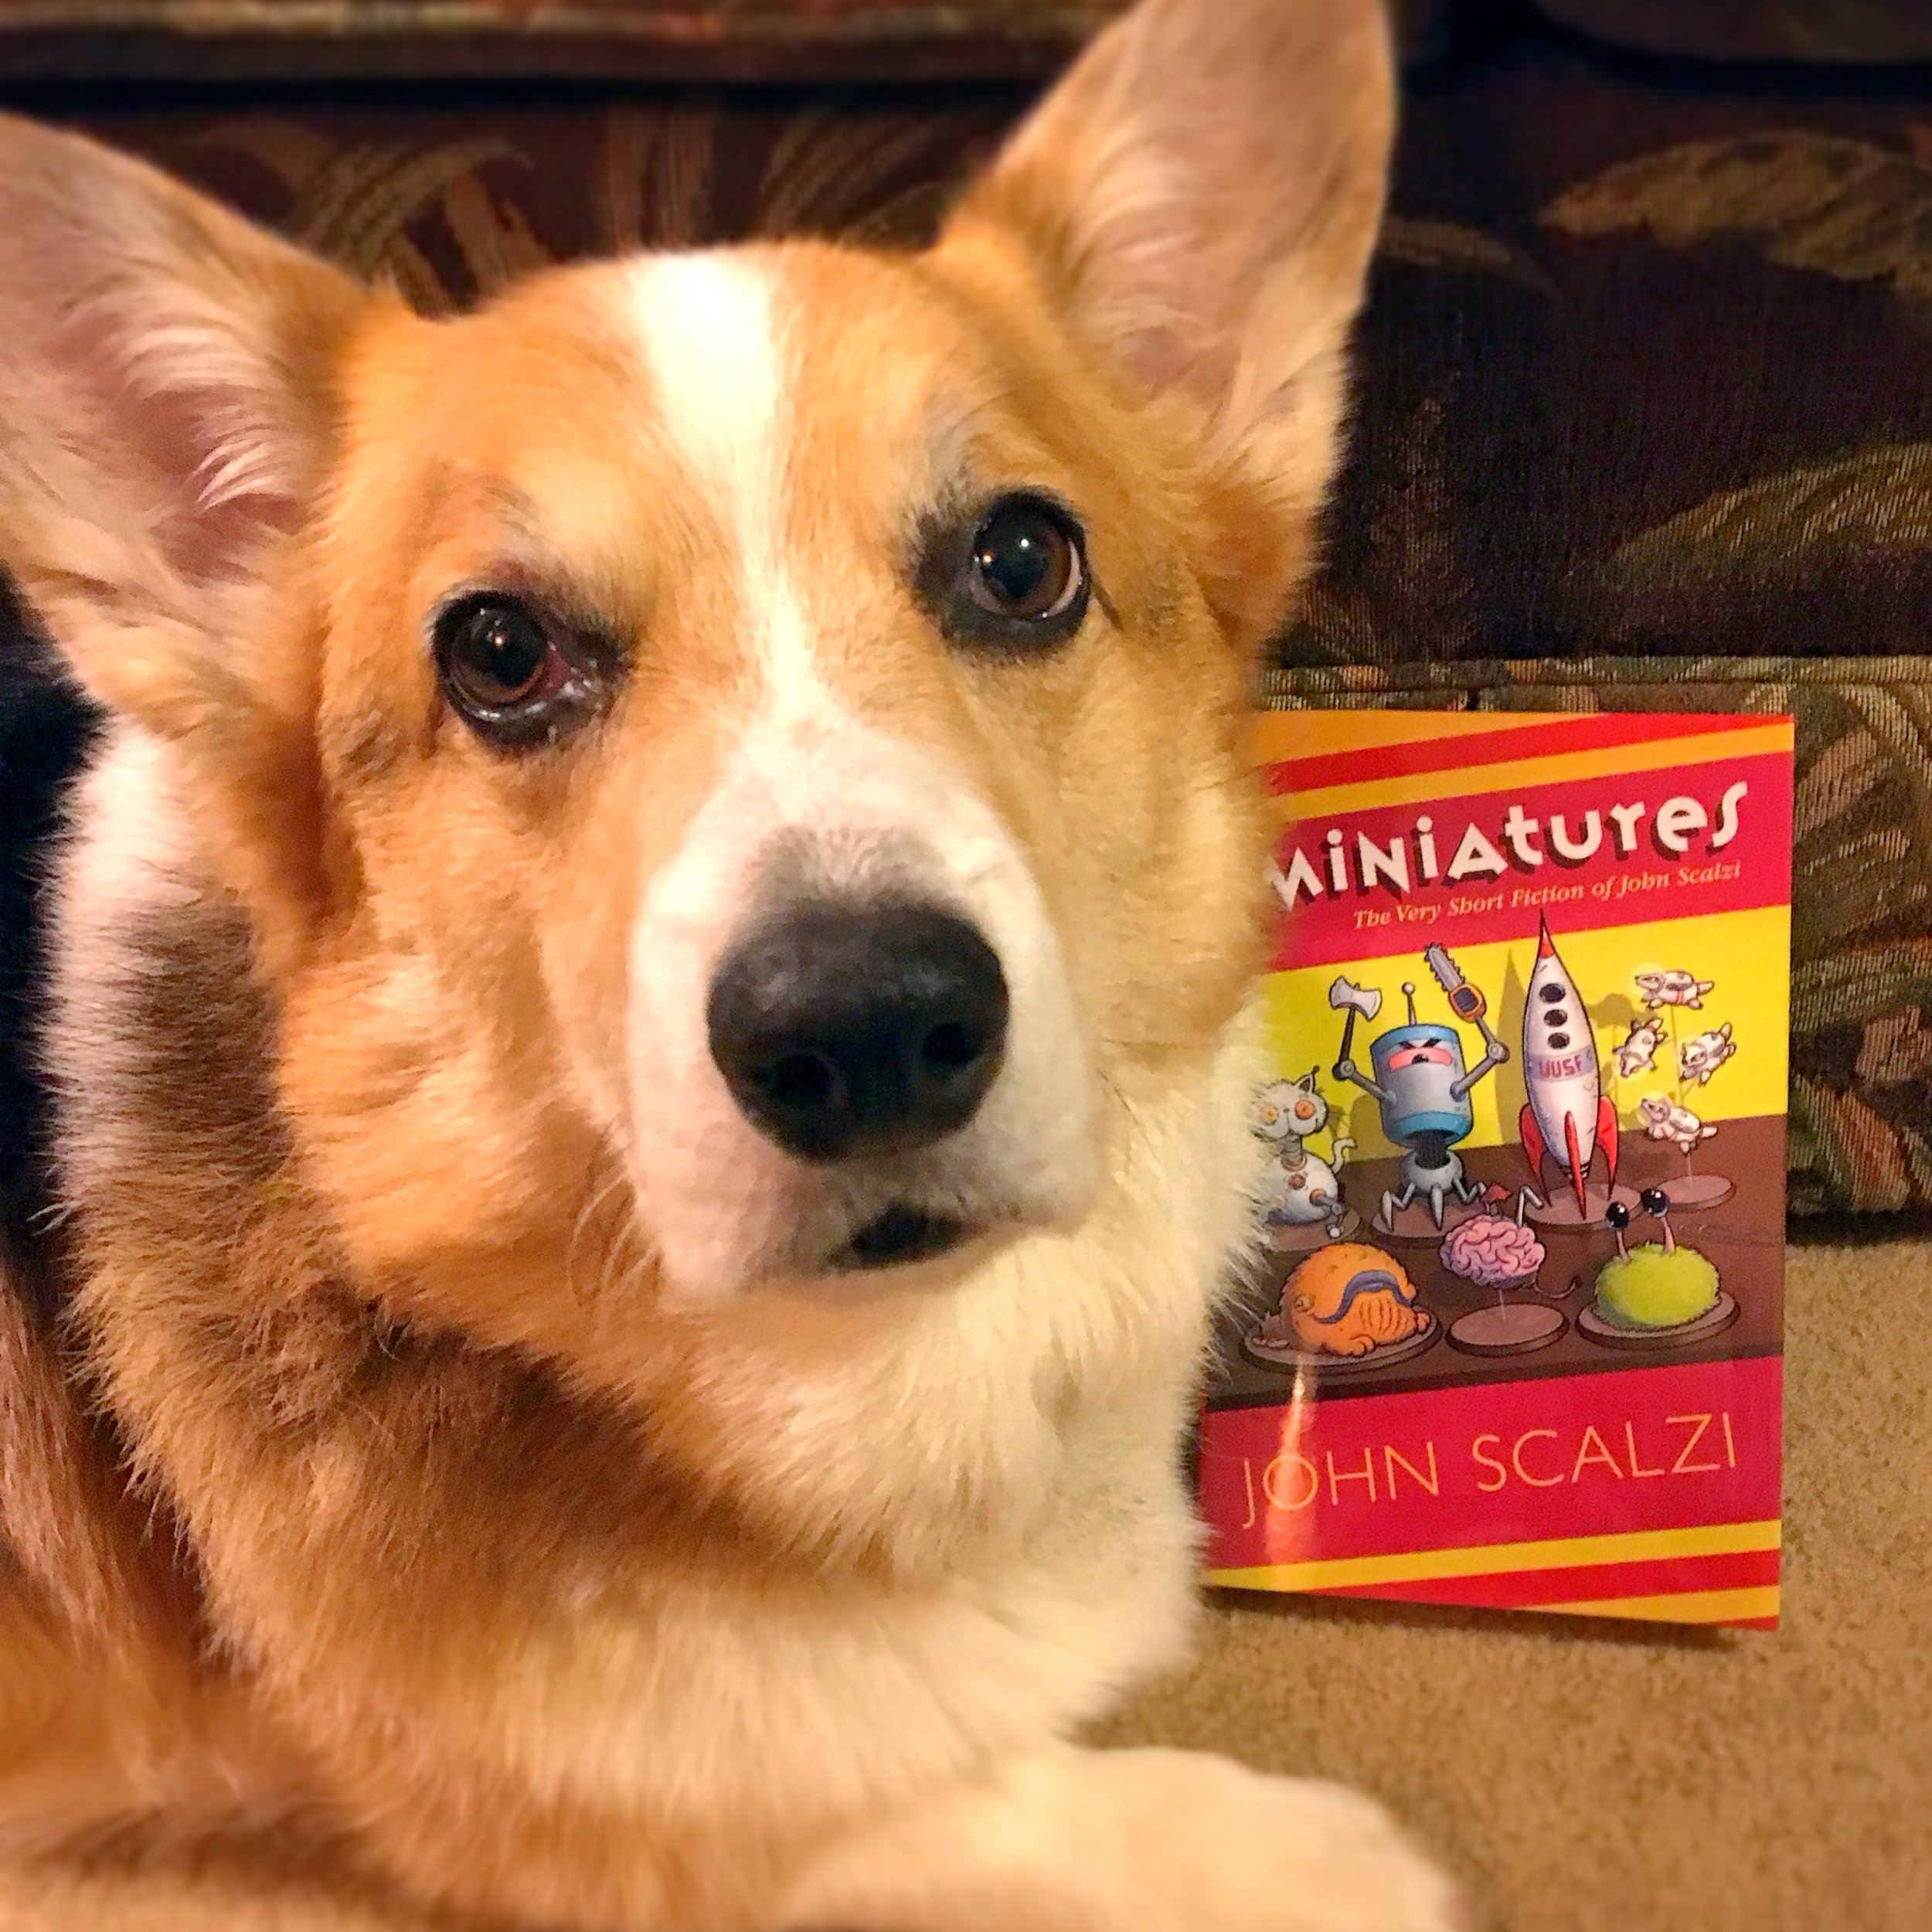 Also, pupper approved!